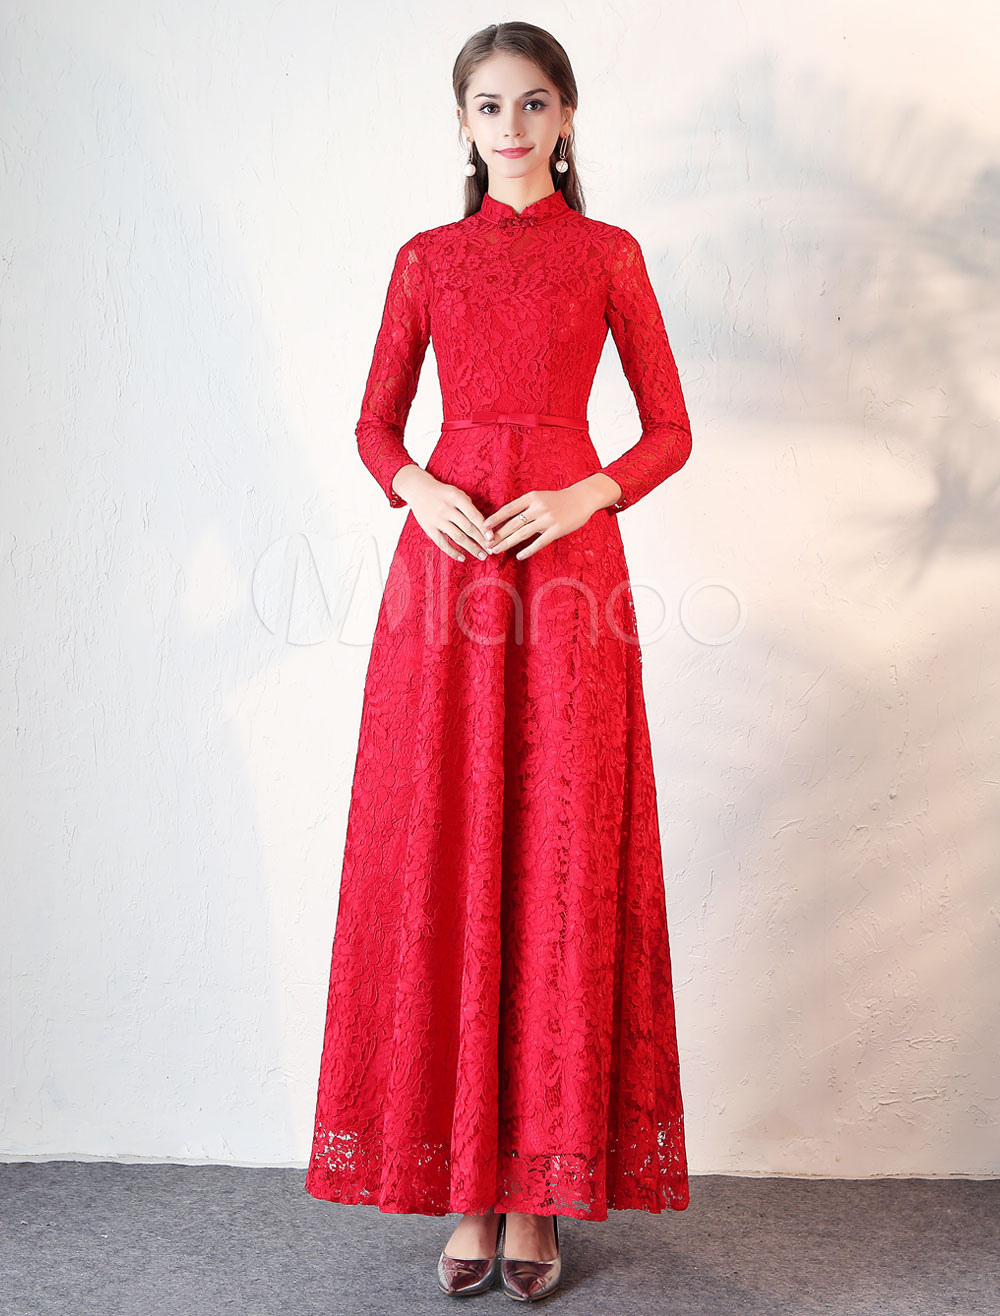 Buy Evening Dresses Burgundy Lace Long Sleeve Prom Dress Mandarin Collar Bow Sash Floor Length Formal Party Dress for $123.19 in Milanoo store